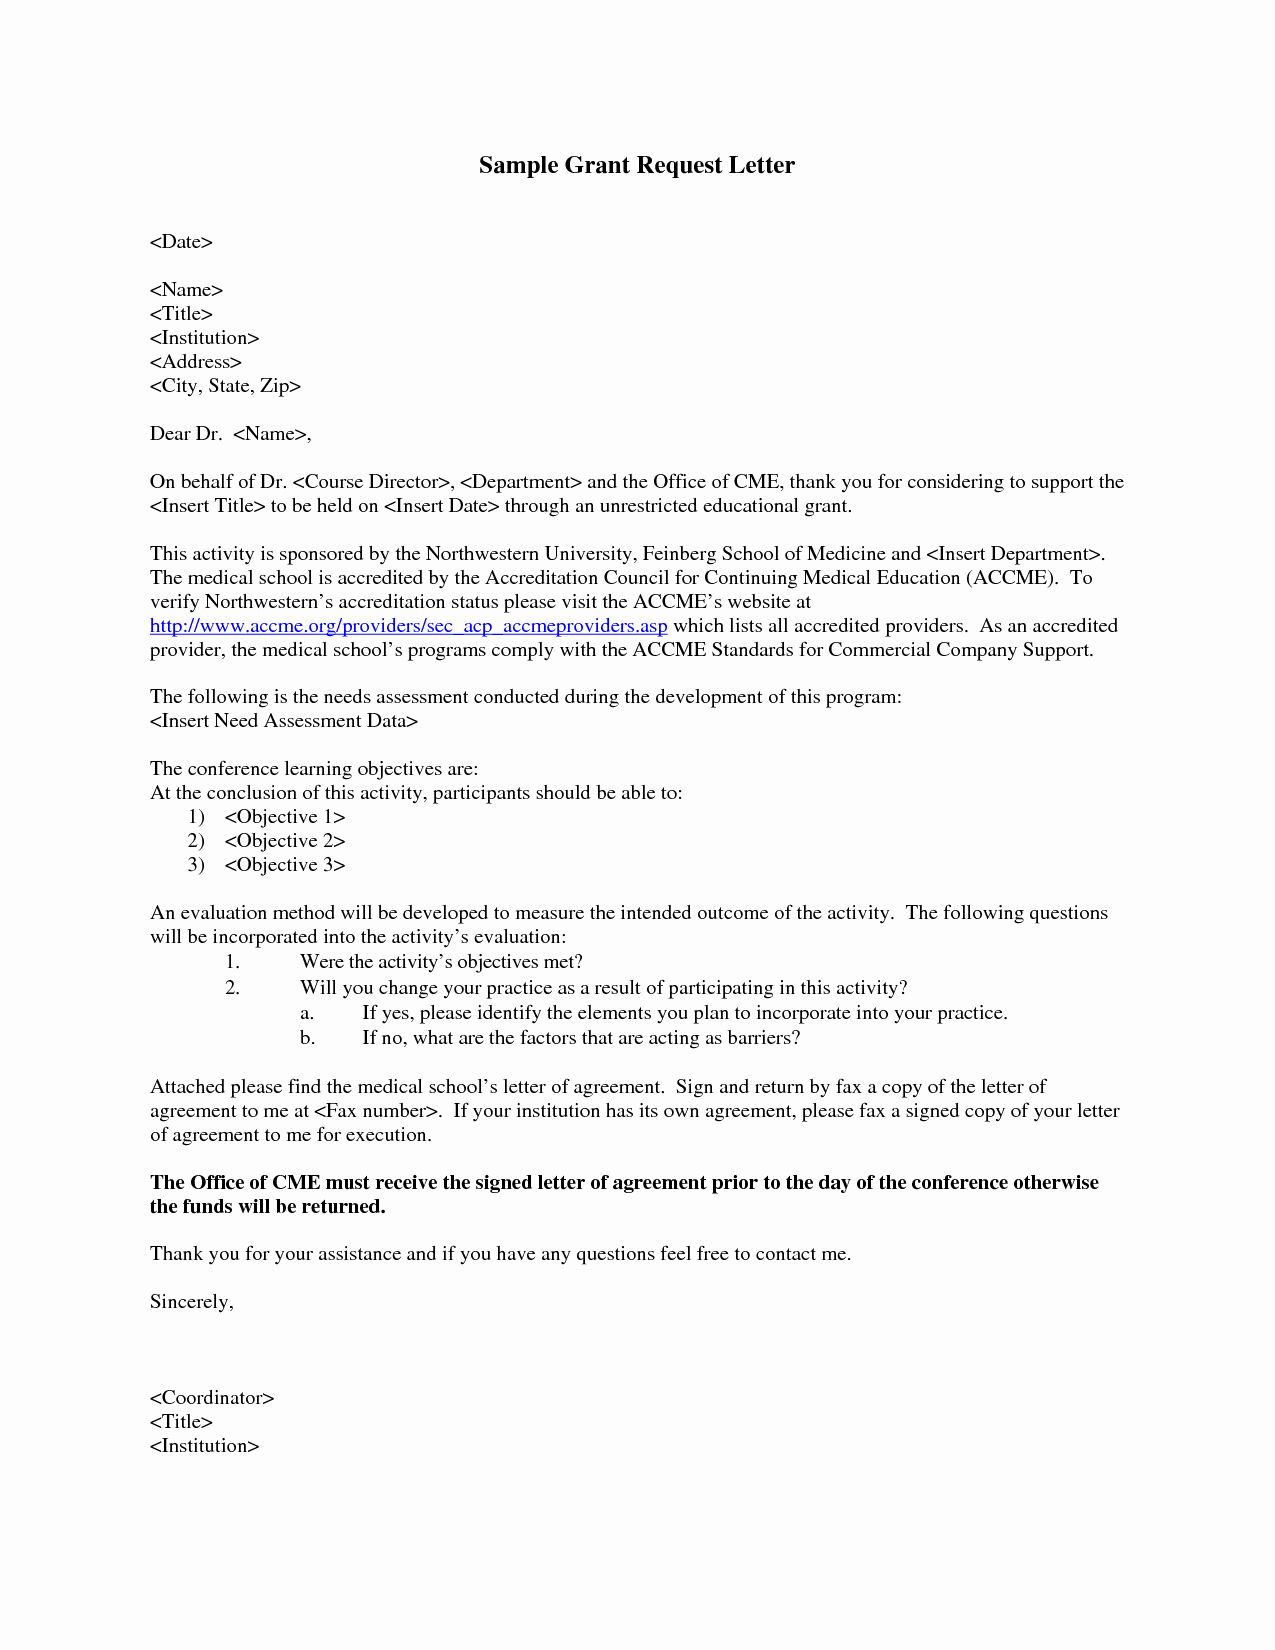 Request for Funds Template New Grant Request Letter Write A Grant Request Letter